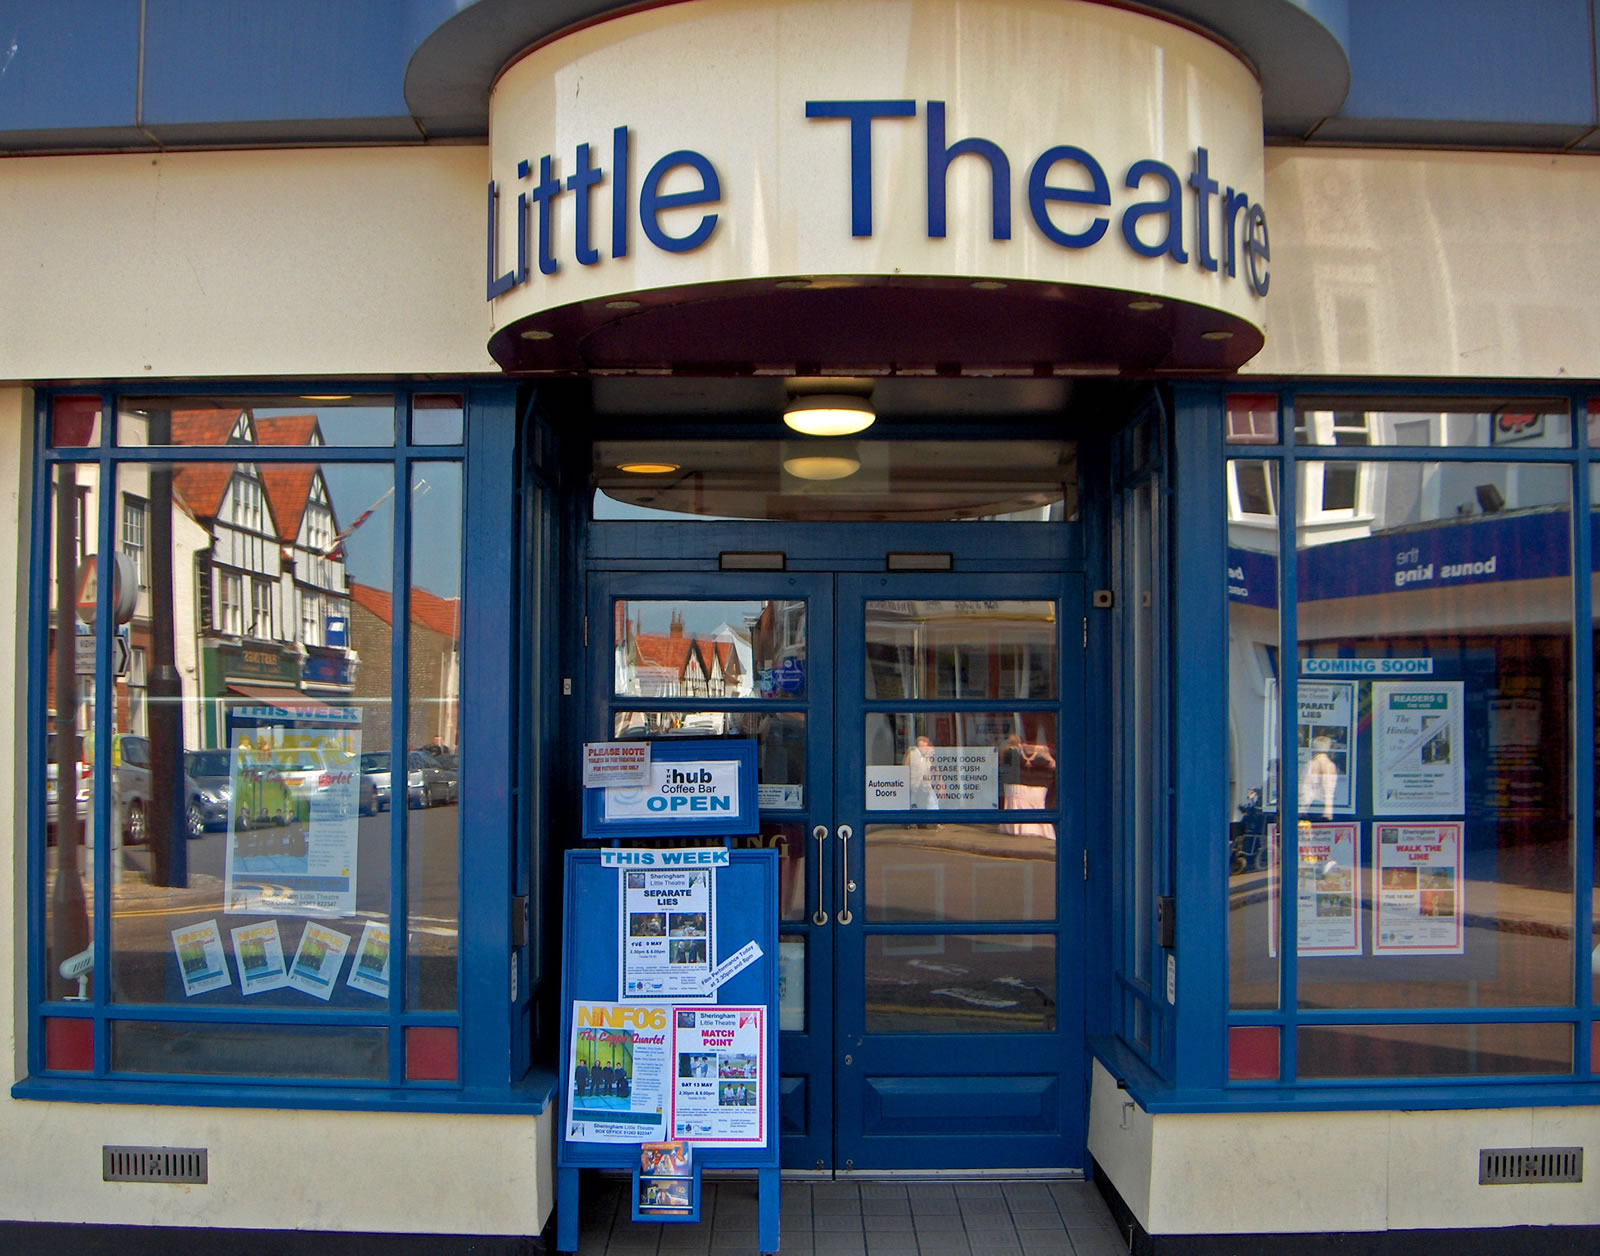 http://www.tournorfolk.co.uk/sheringham/thelittletheatre.jpg